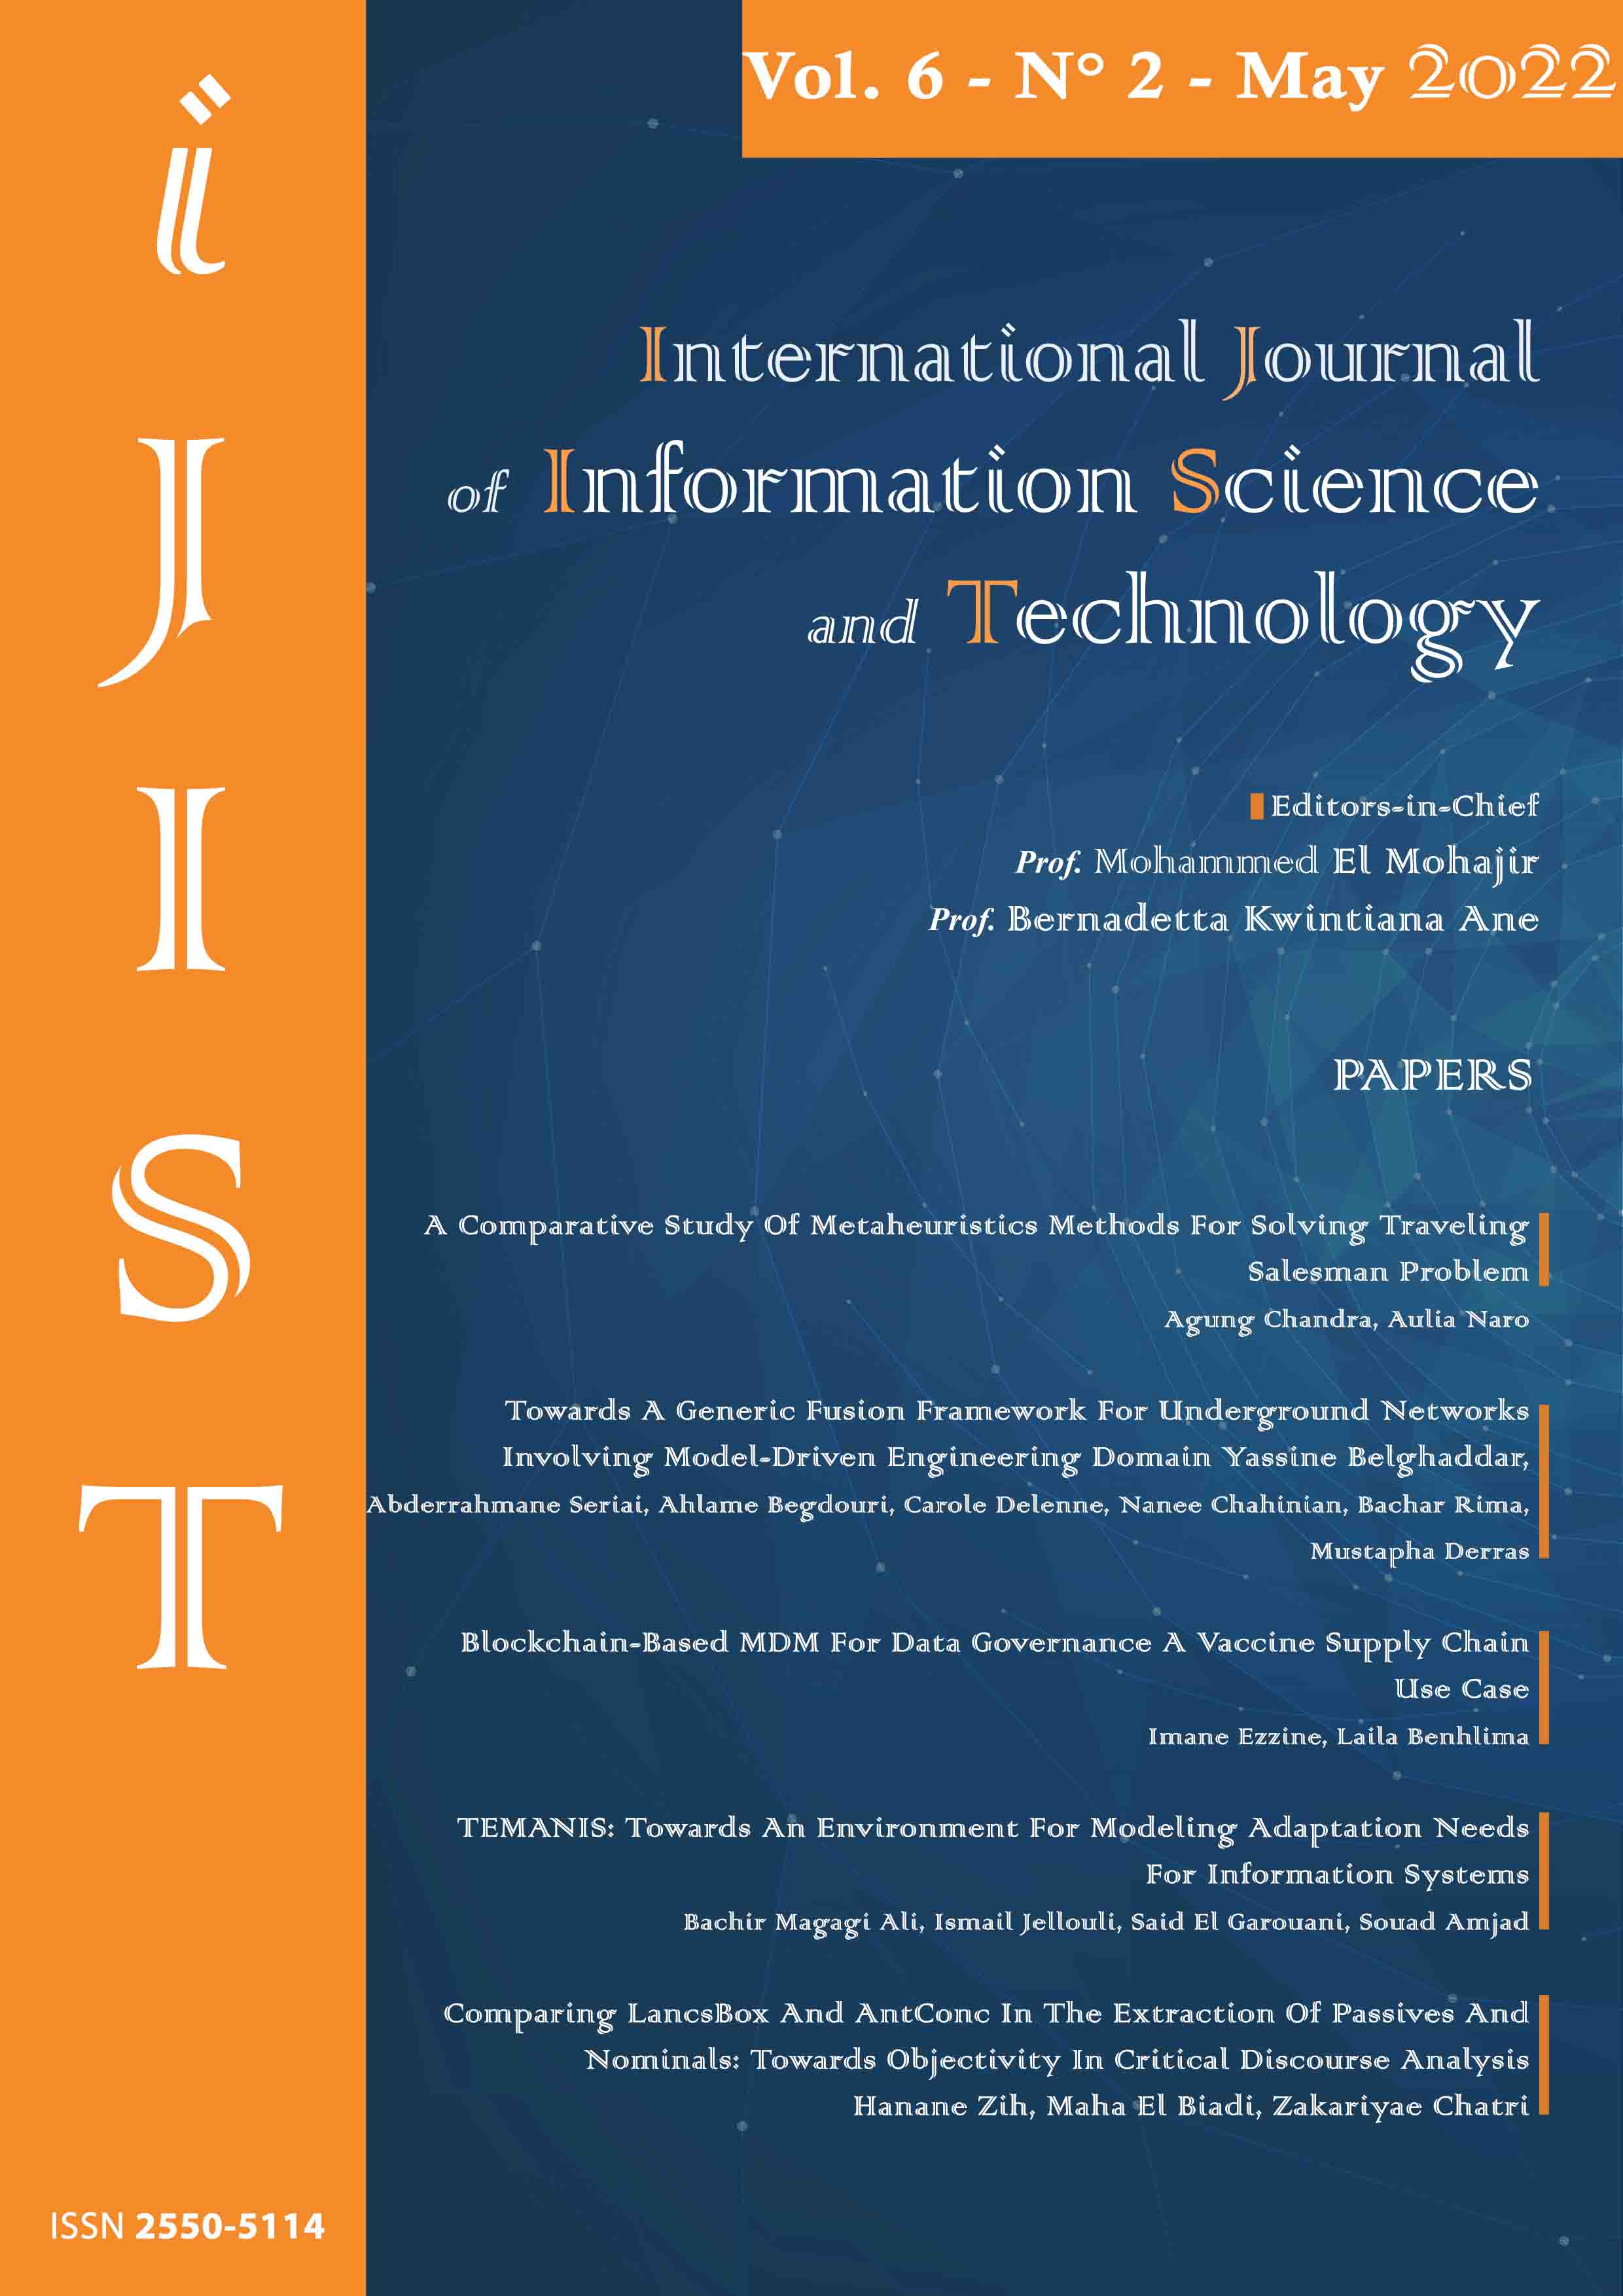 International Journal of Information Science and Technology